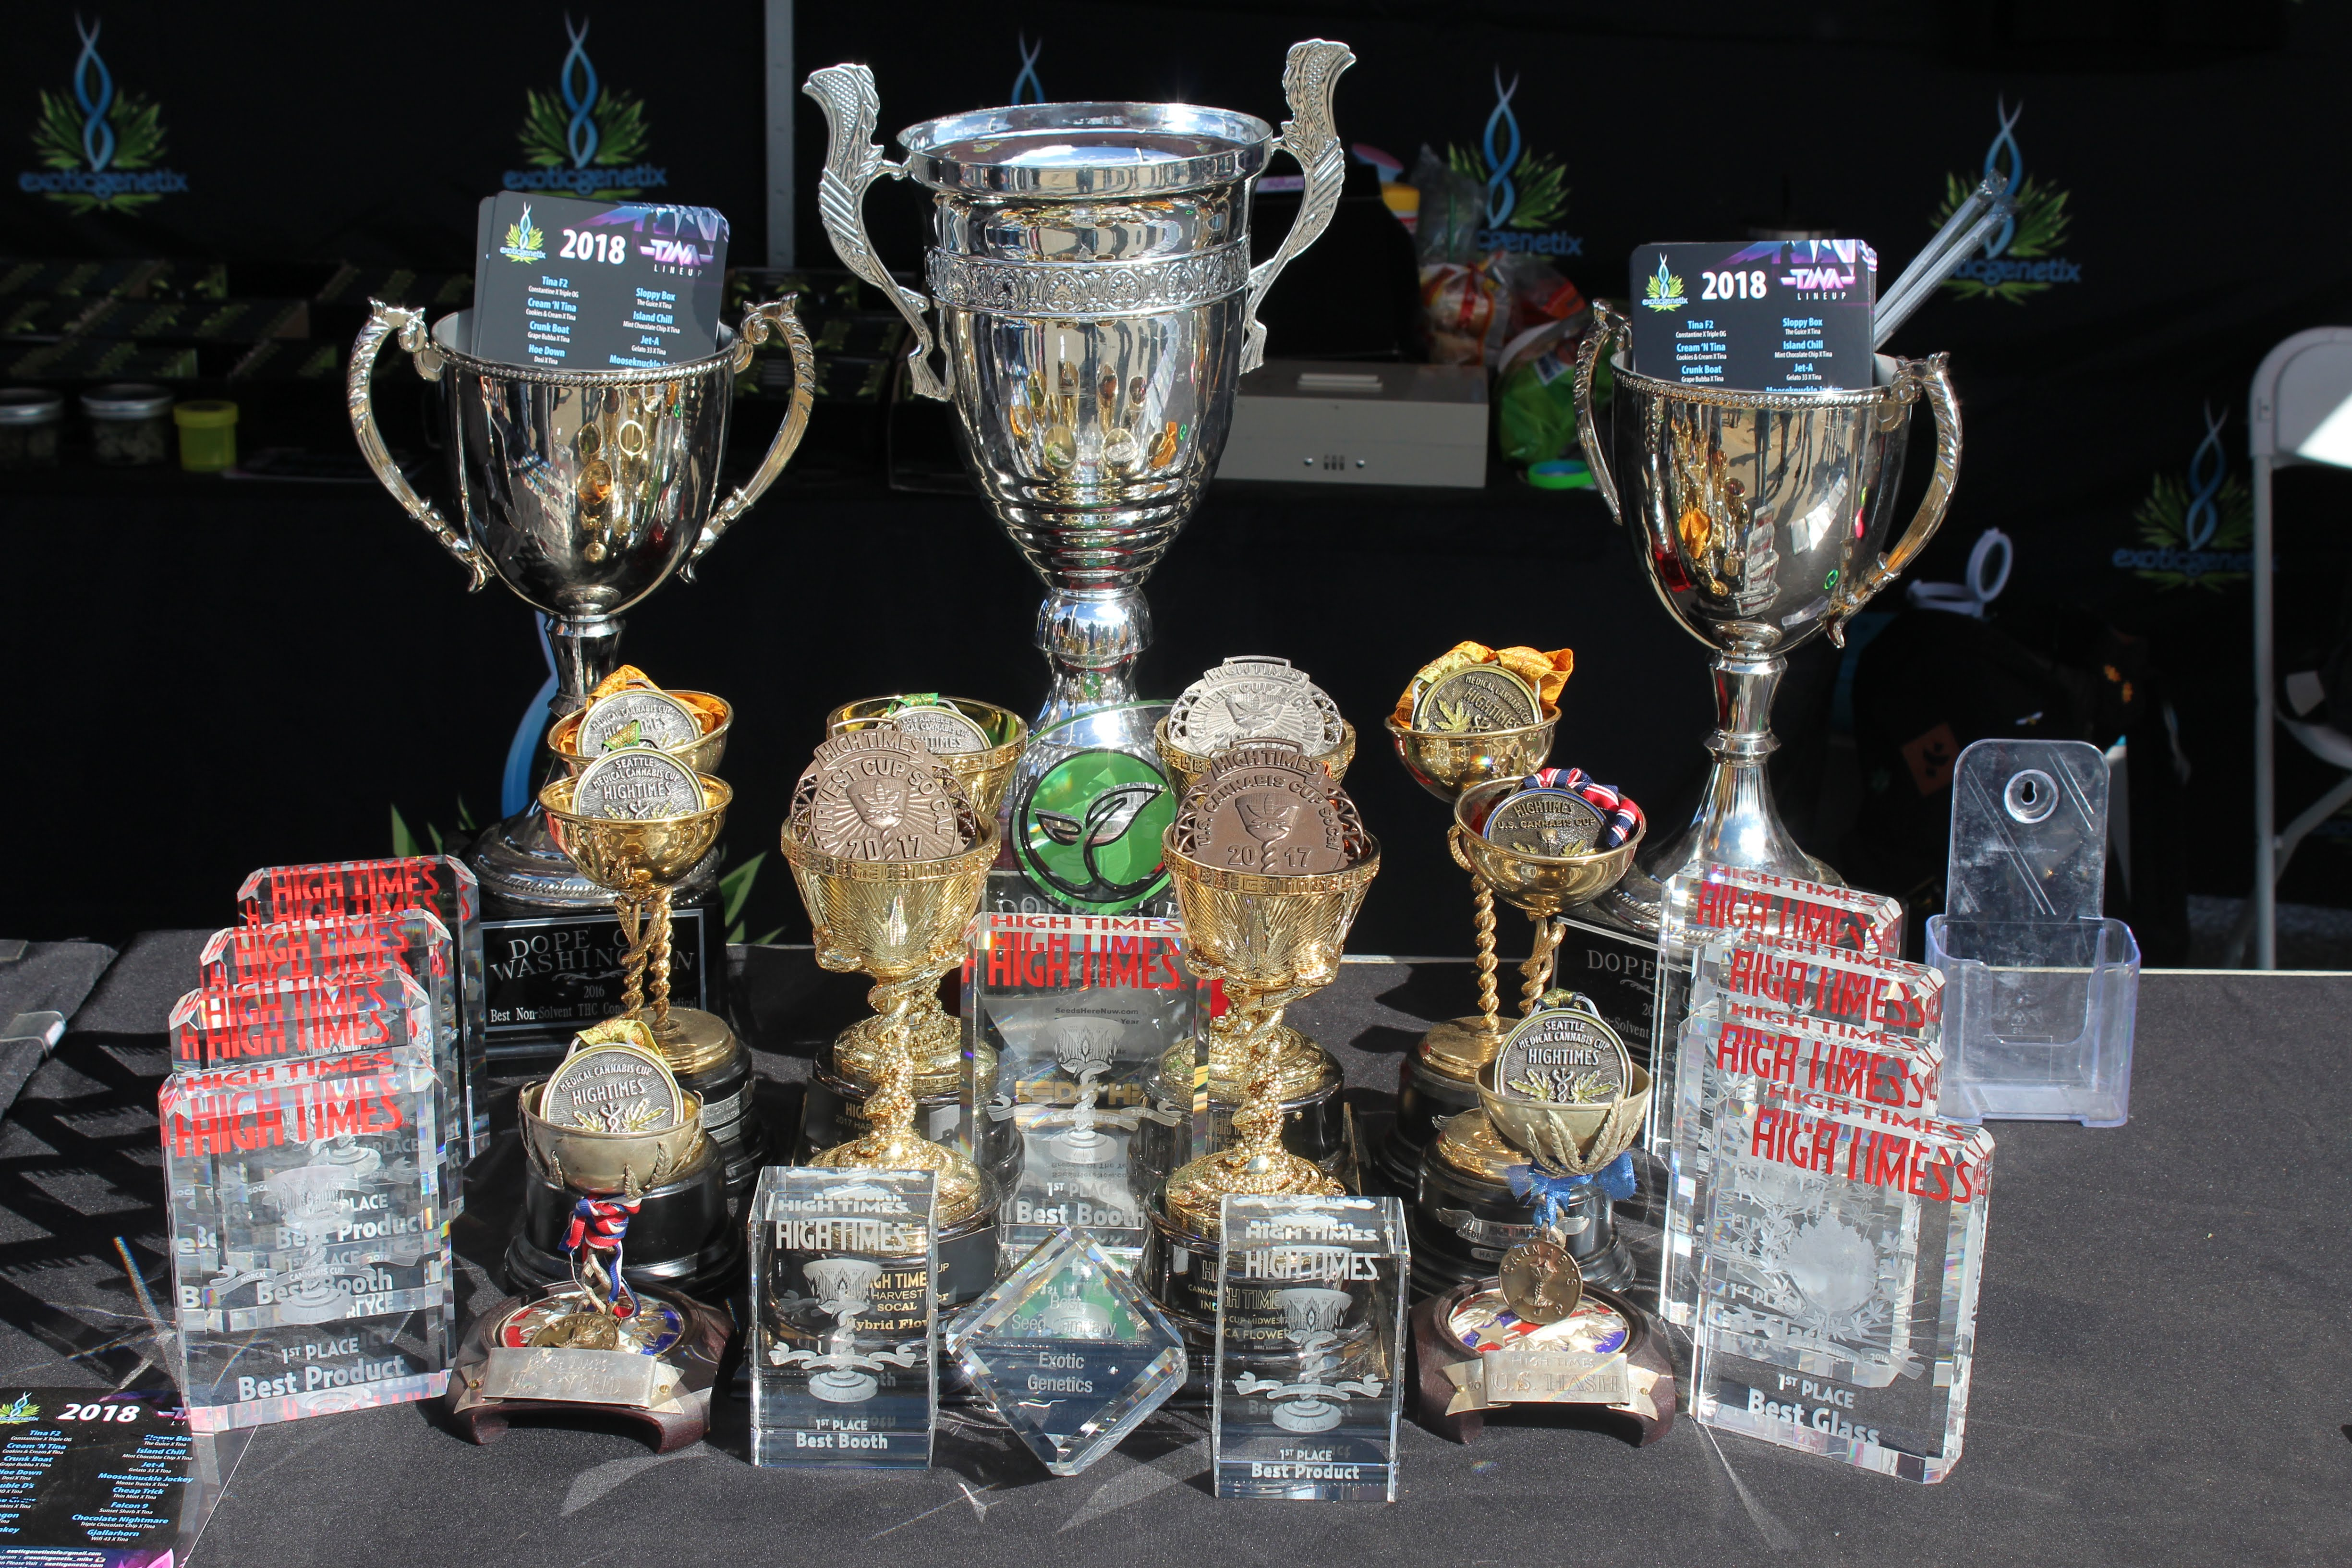 Photo of trophies given out at Midwest Cannabis Cup